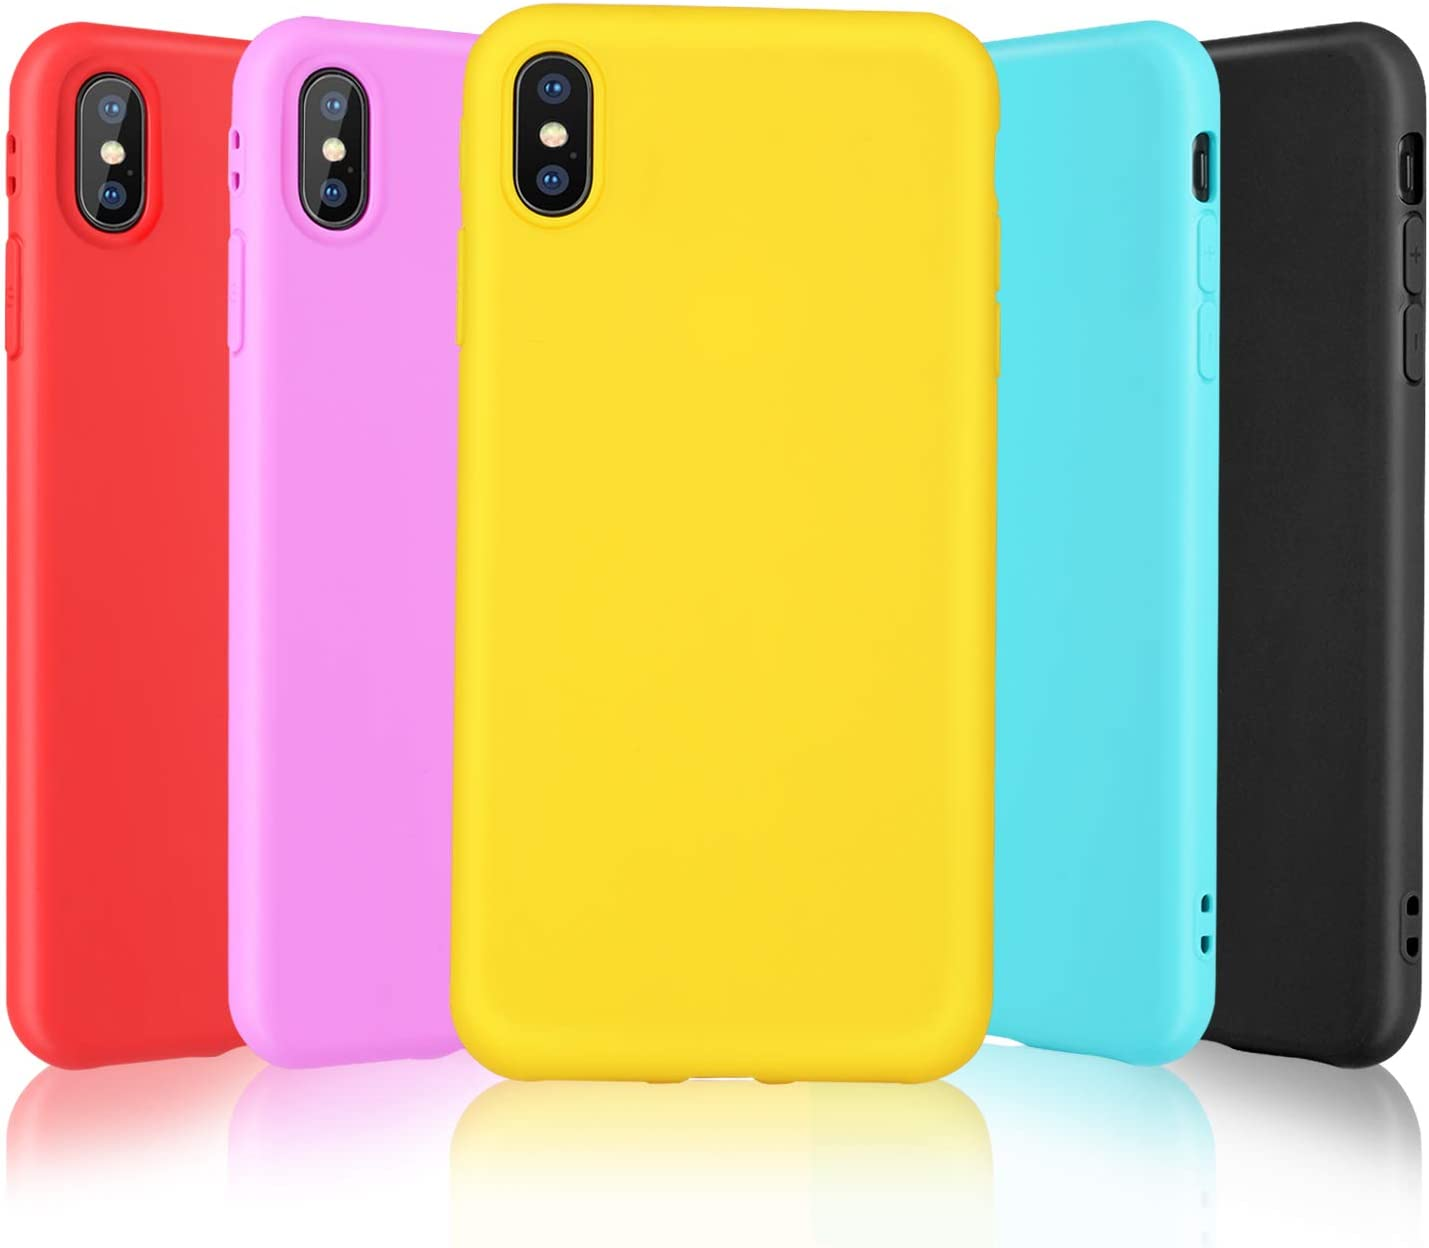 Pofesun Slim Fit iPhone Xs Max Case, 5Pack Soft Silicone Gel Rubber Bumper Case Shockproof Full-Body Protective Case Cover Compatible for iPhone Xs Max 6.5 inch (2018)-Black,Red,Rose,Yellow,Mint